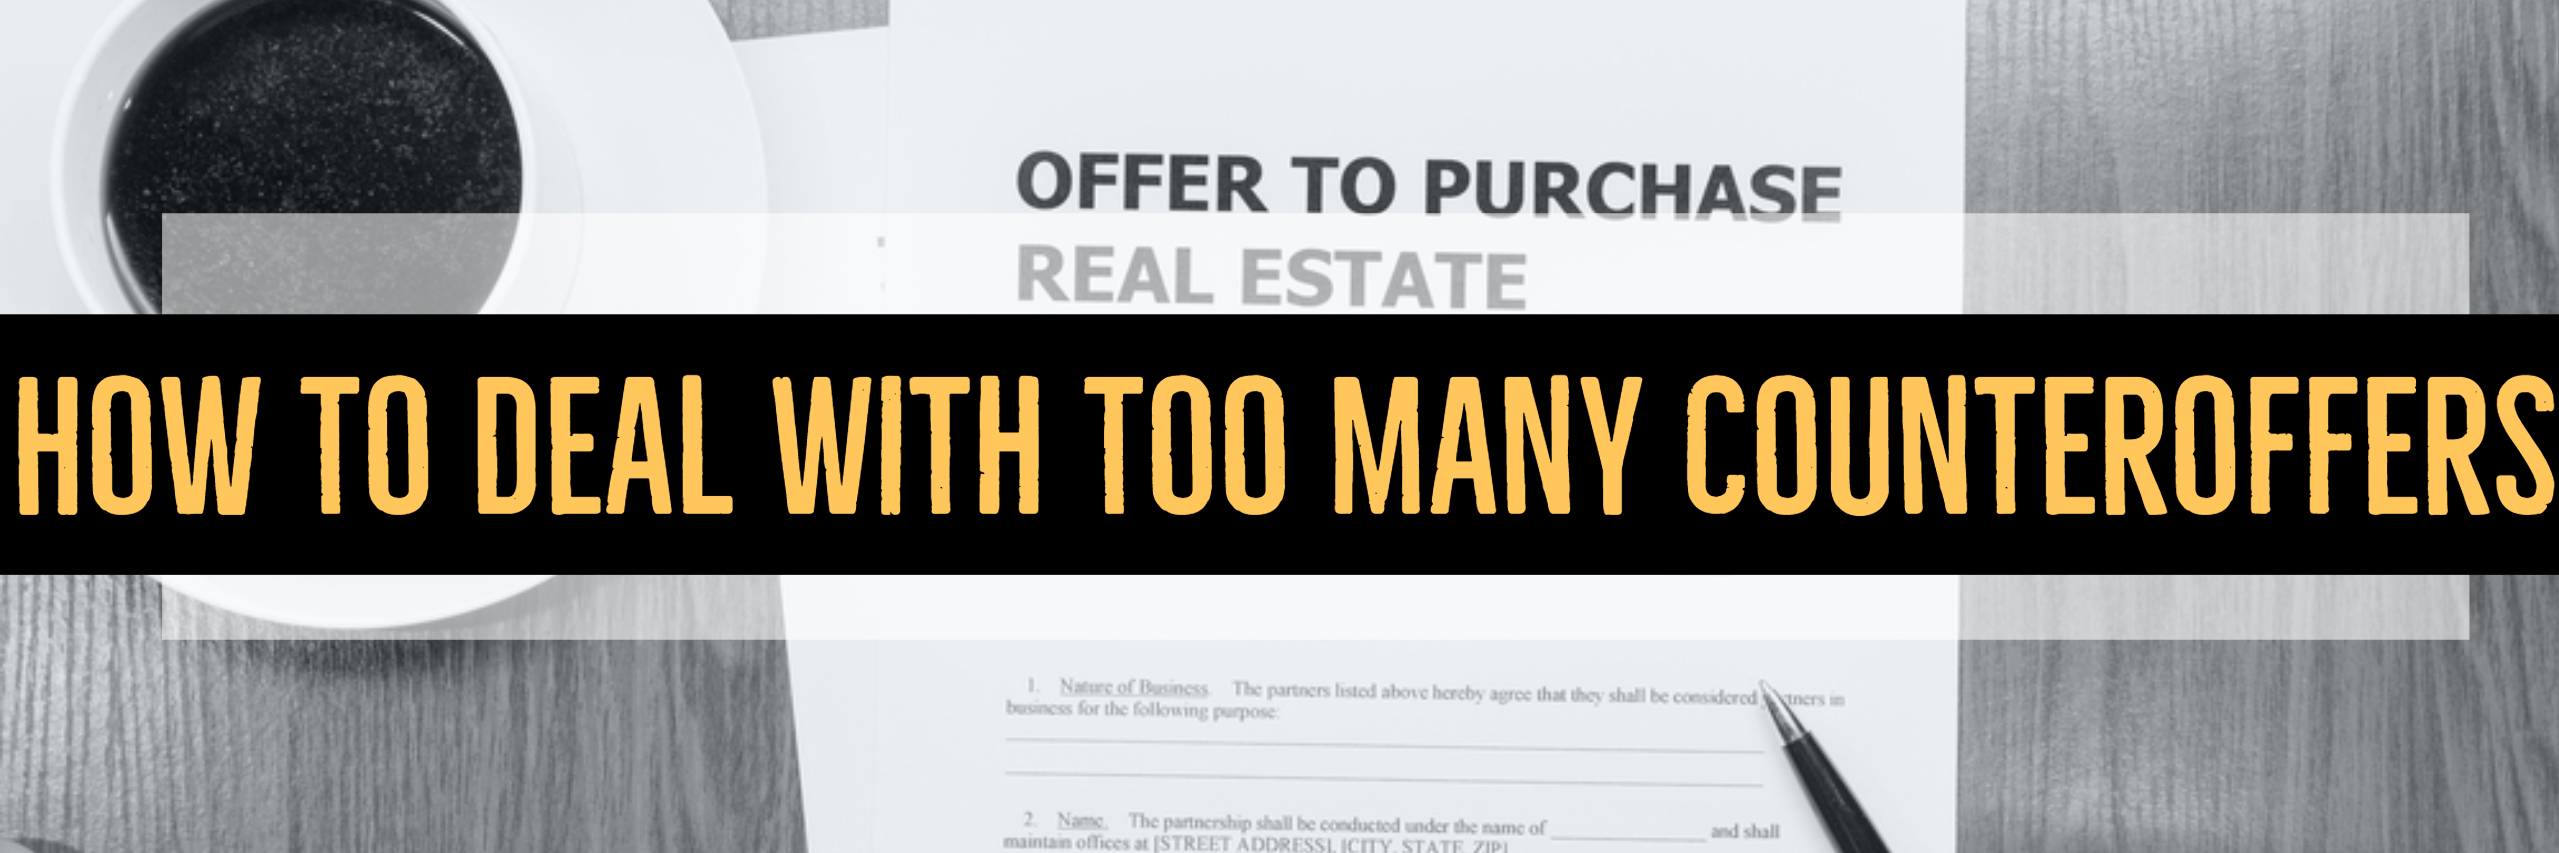 How To Deal With Too Many Counteroffers best real estate agent in Los Angeles top producing Paul Argueta